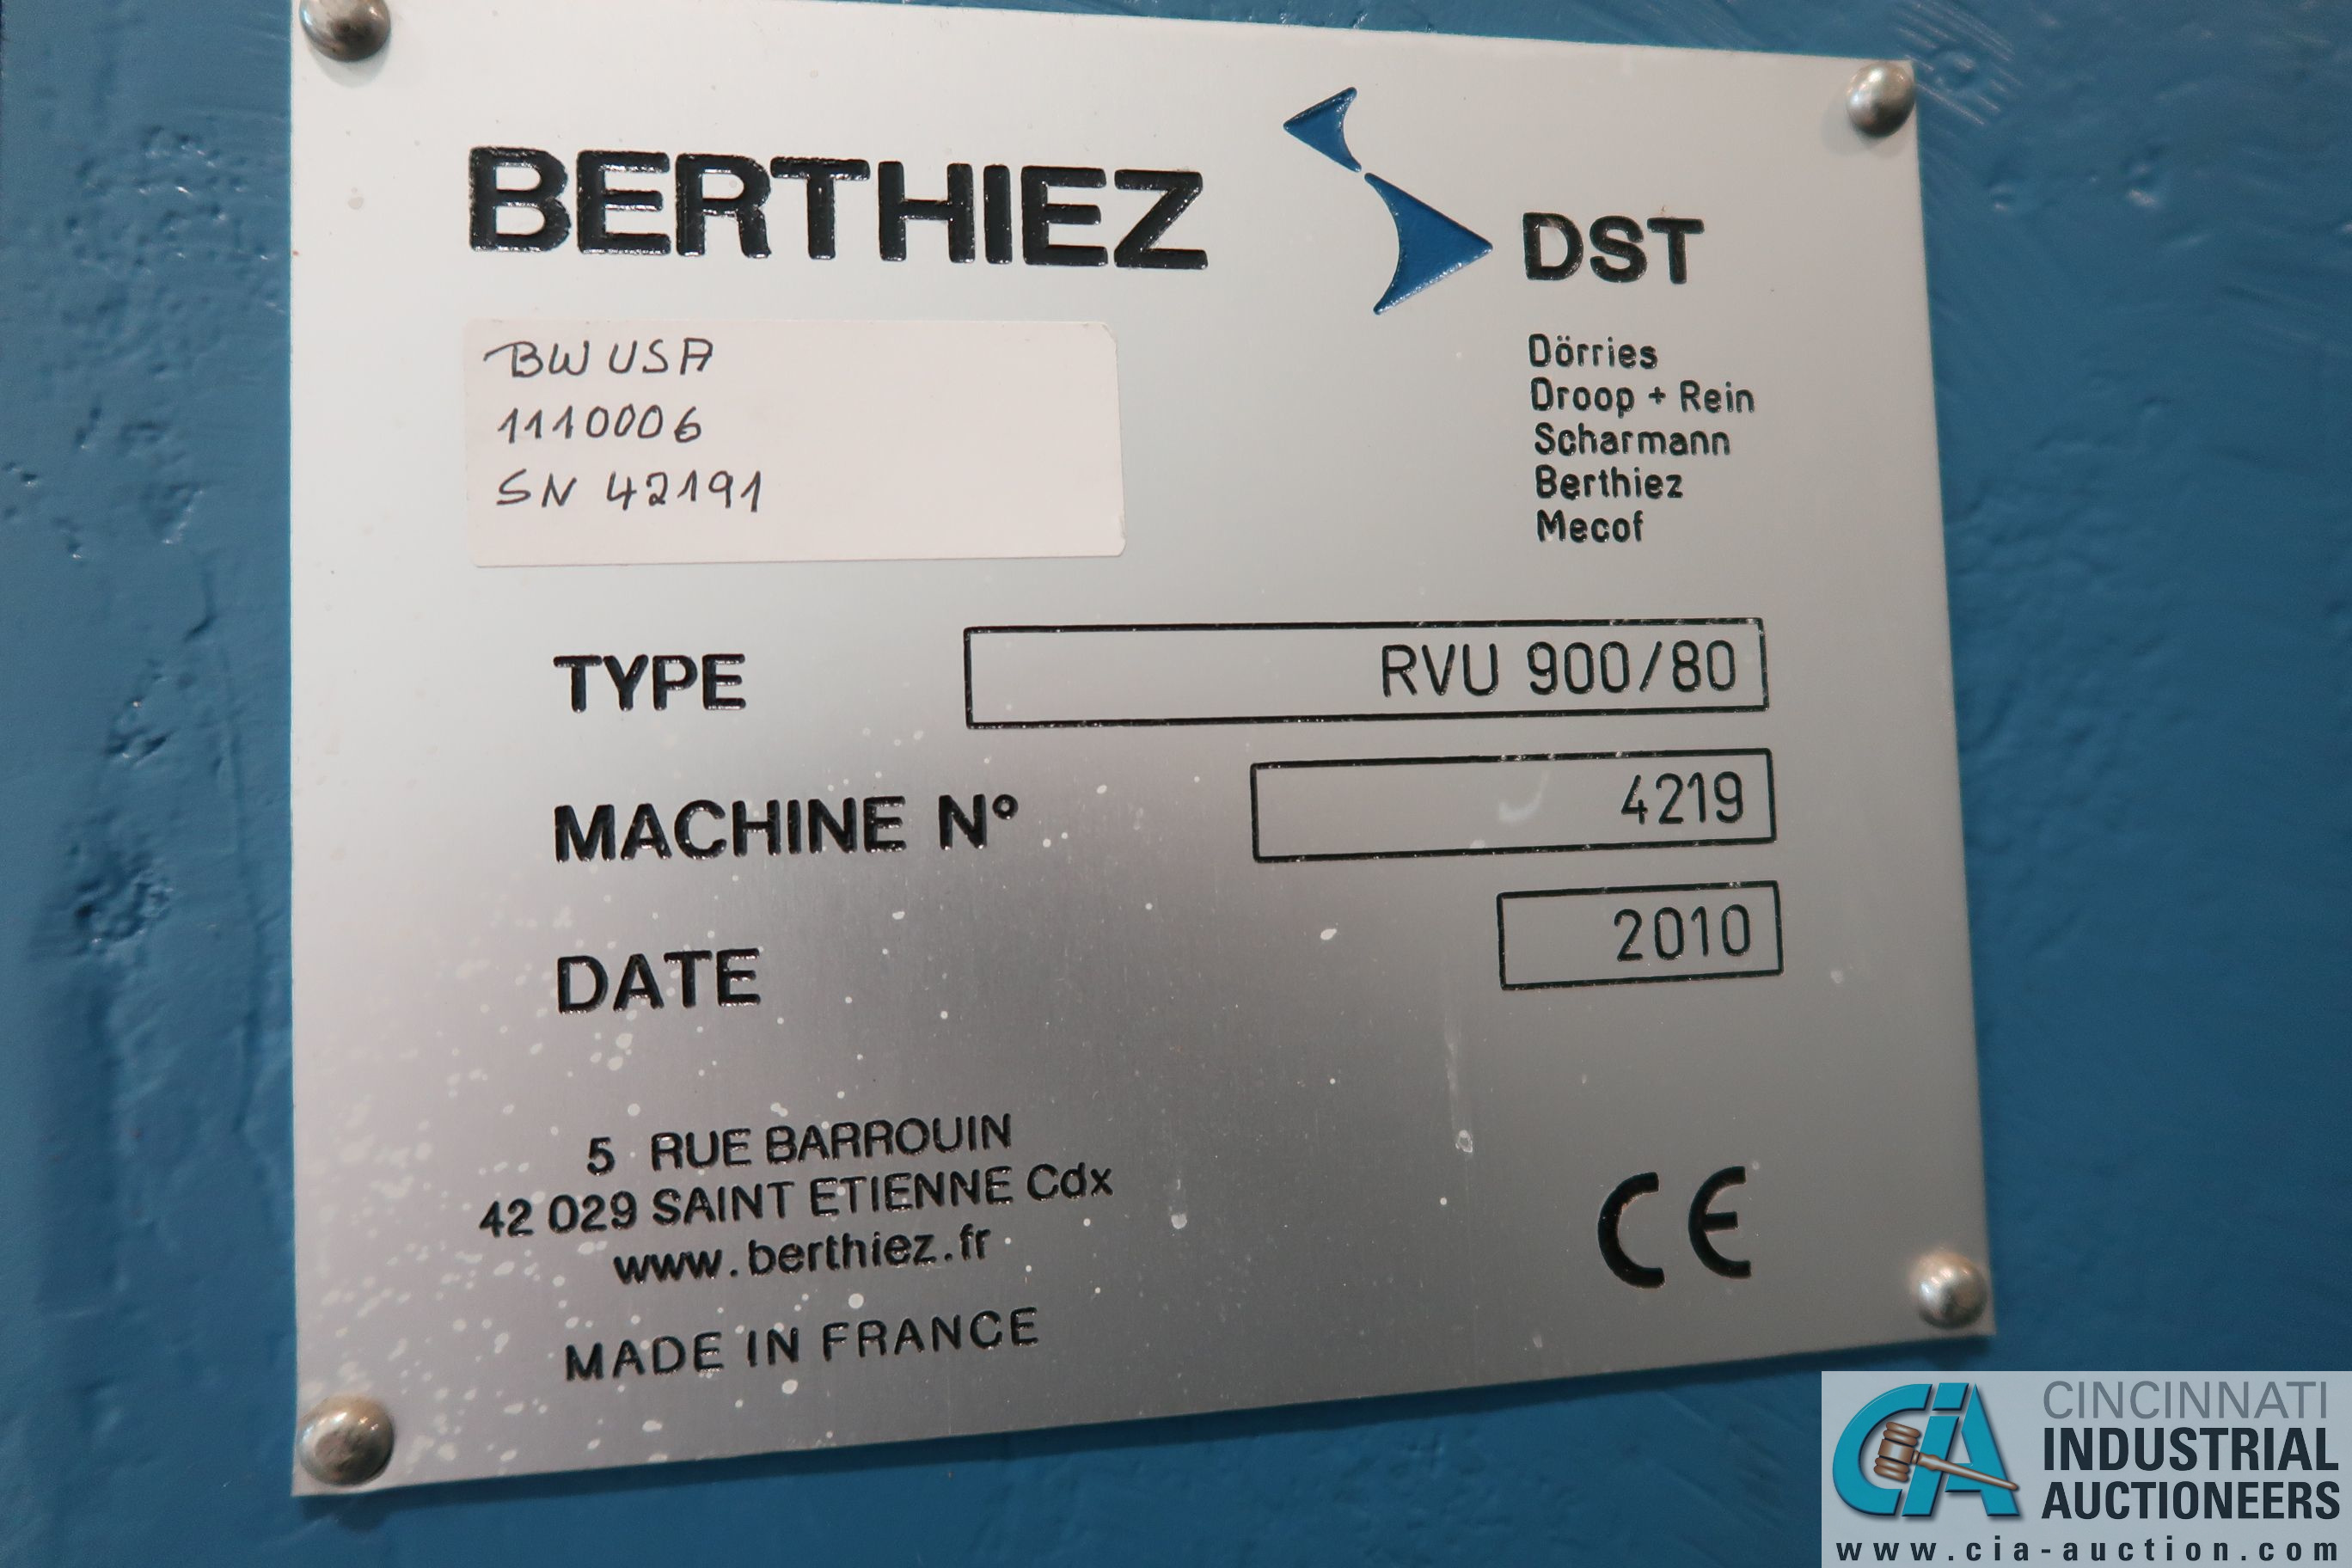 BERTHIEZ MODEL RVU 900/80 ID/OD, WITH TURNING, VERTICAL CNC GRINDER; S/N 4219, 84OD SIEMENS CONTROL - Image 5 of 33